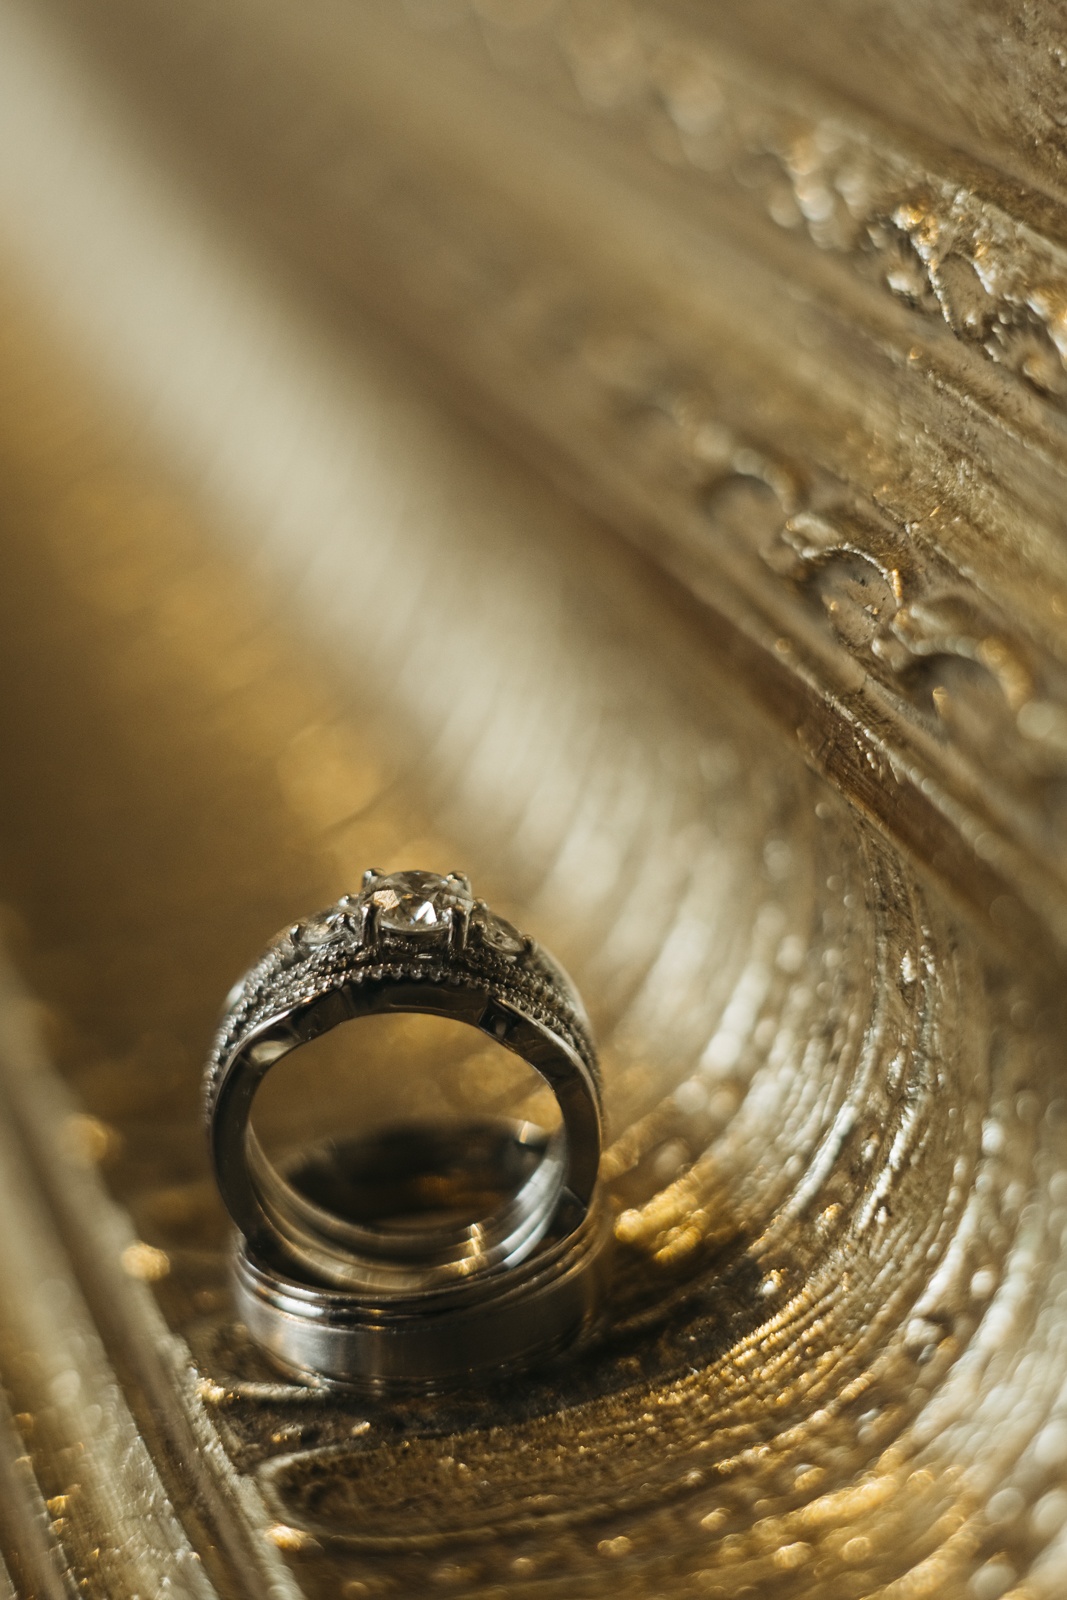 Diamond ring detail photography at wedding in Plymouth, Michigan.